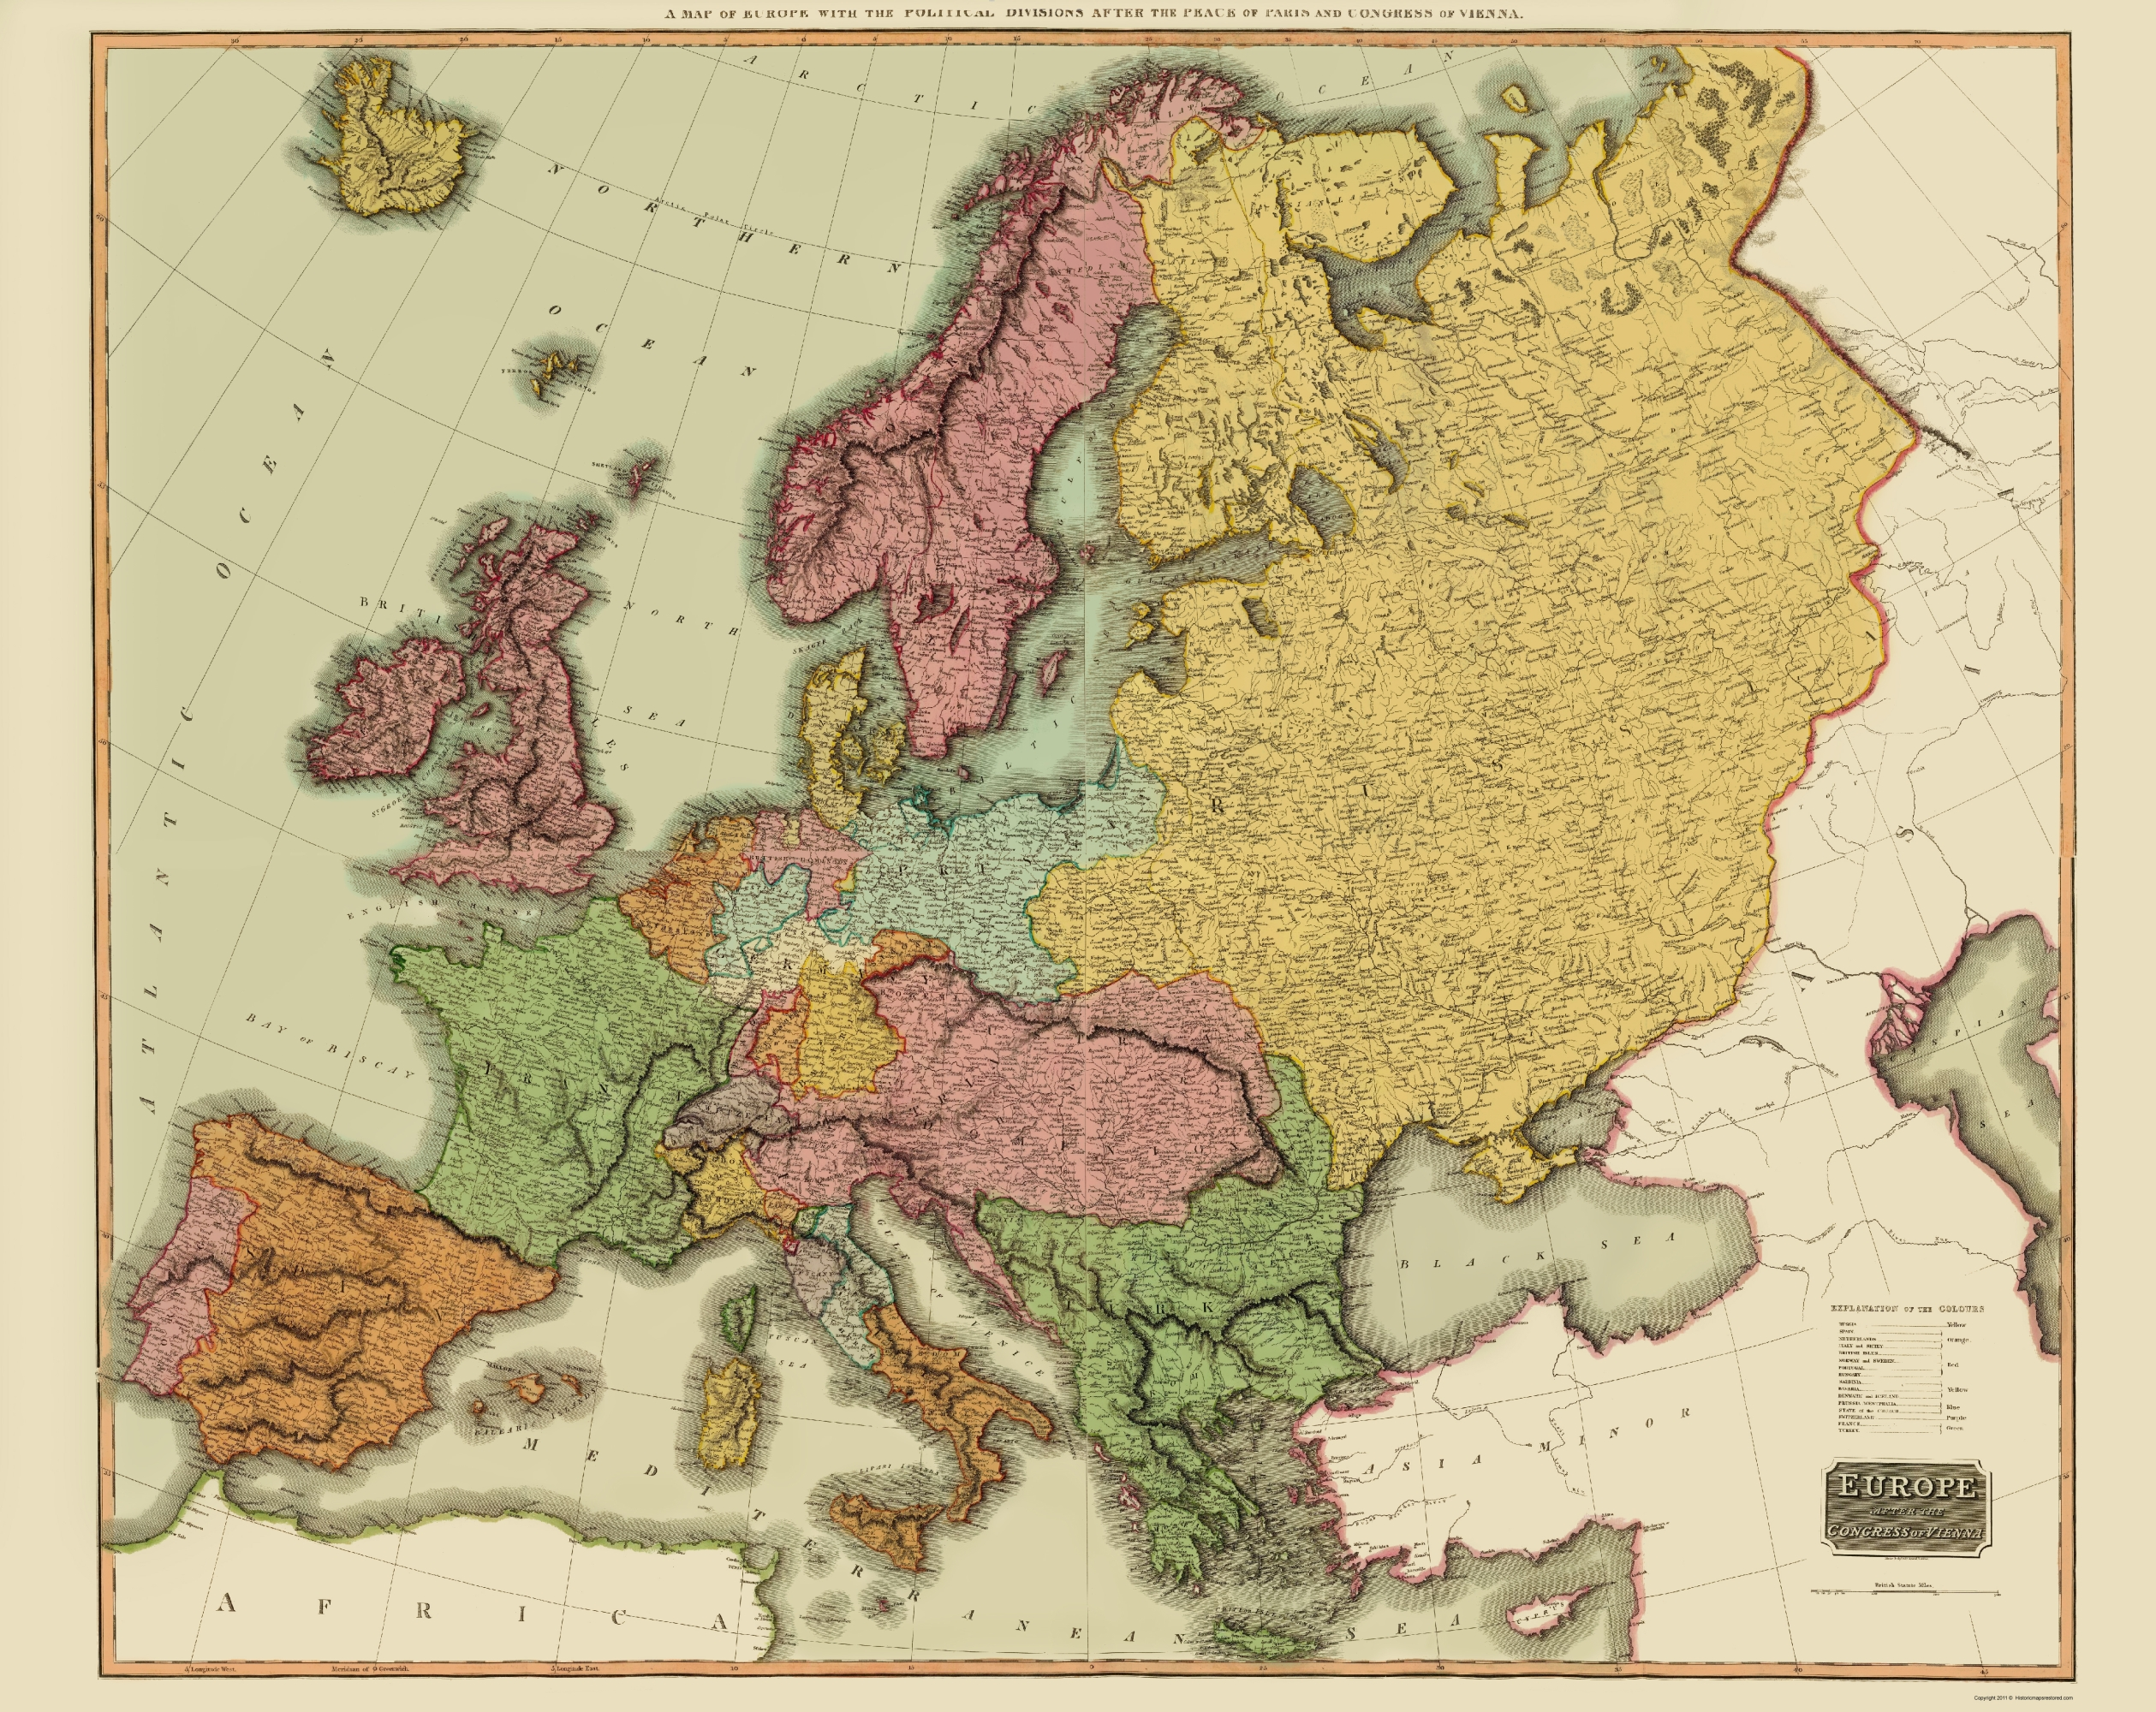 Old Europe Map - Europe after Congress of Vienna 1815